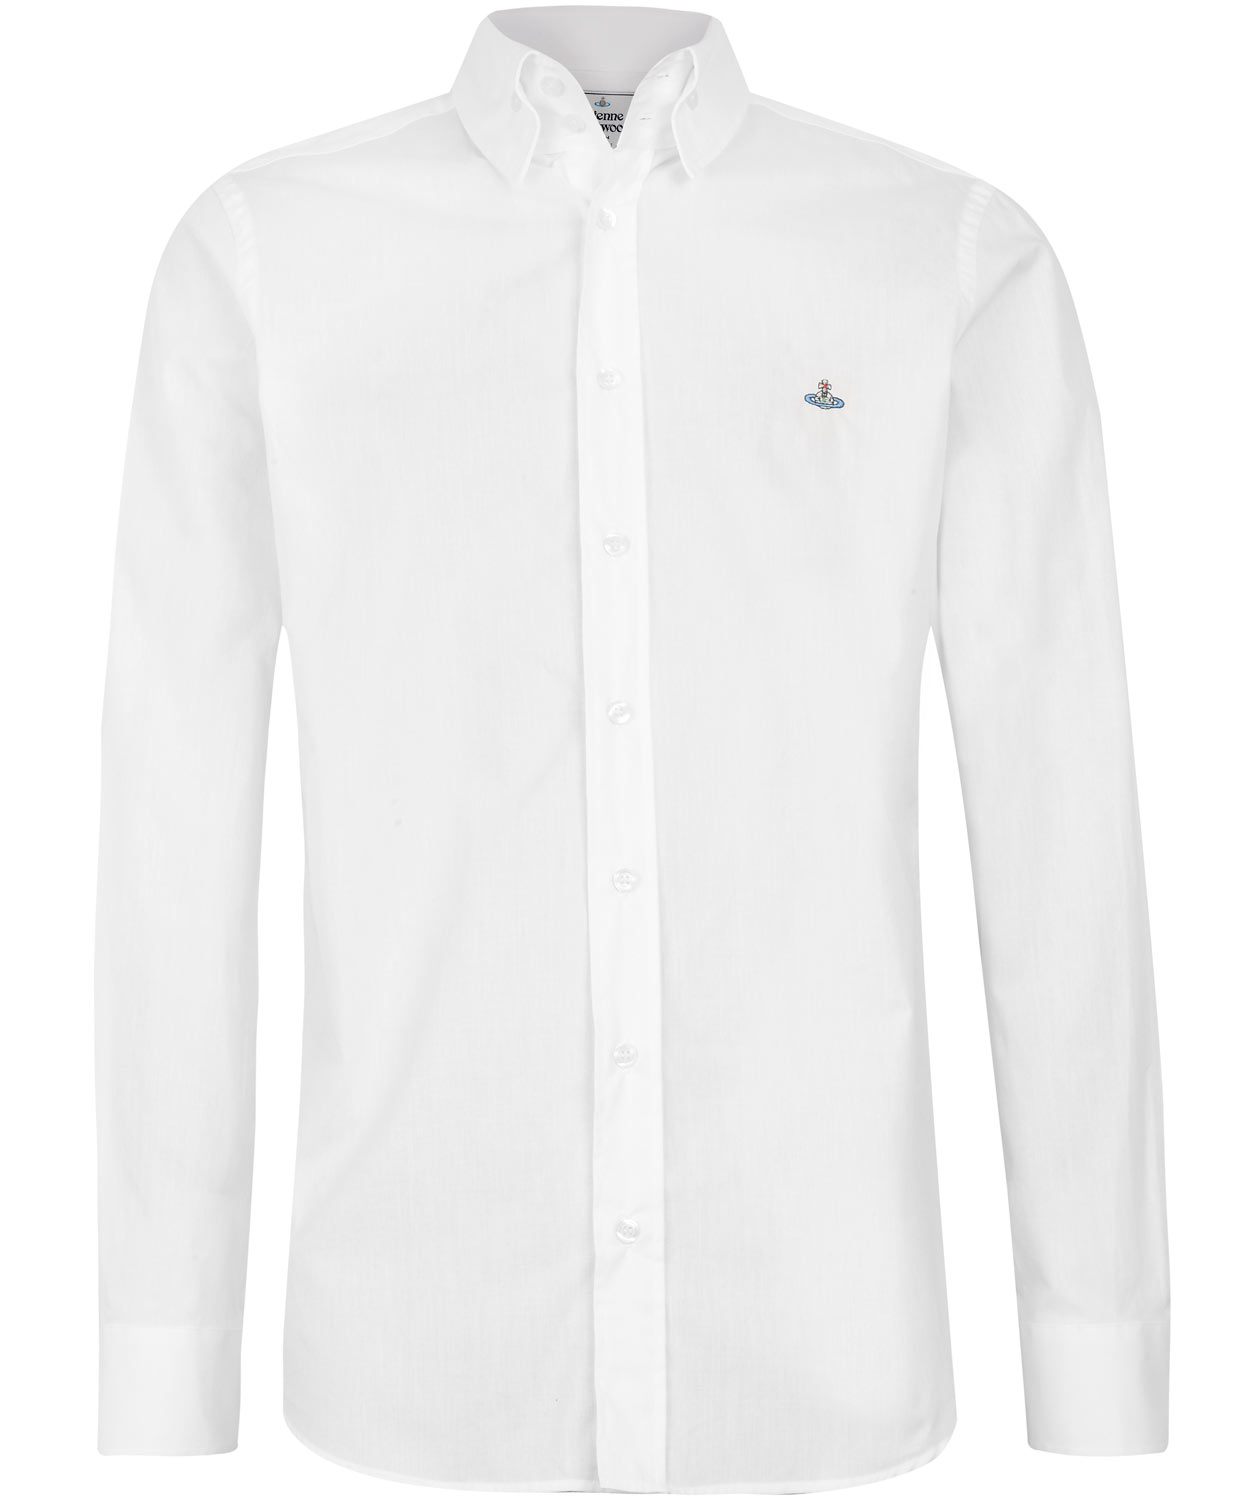 Vivienne westwood white three button collar shirt in white for Three button collar shirts